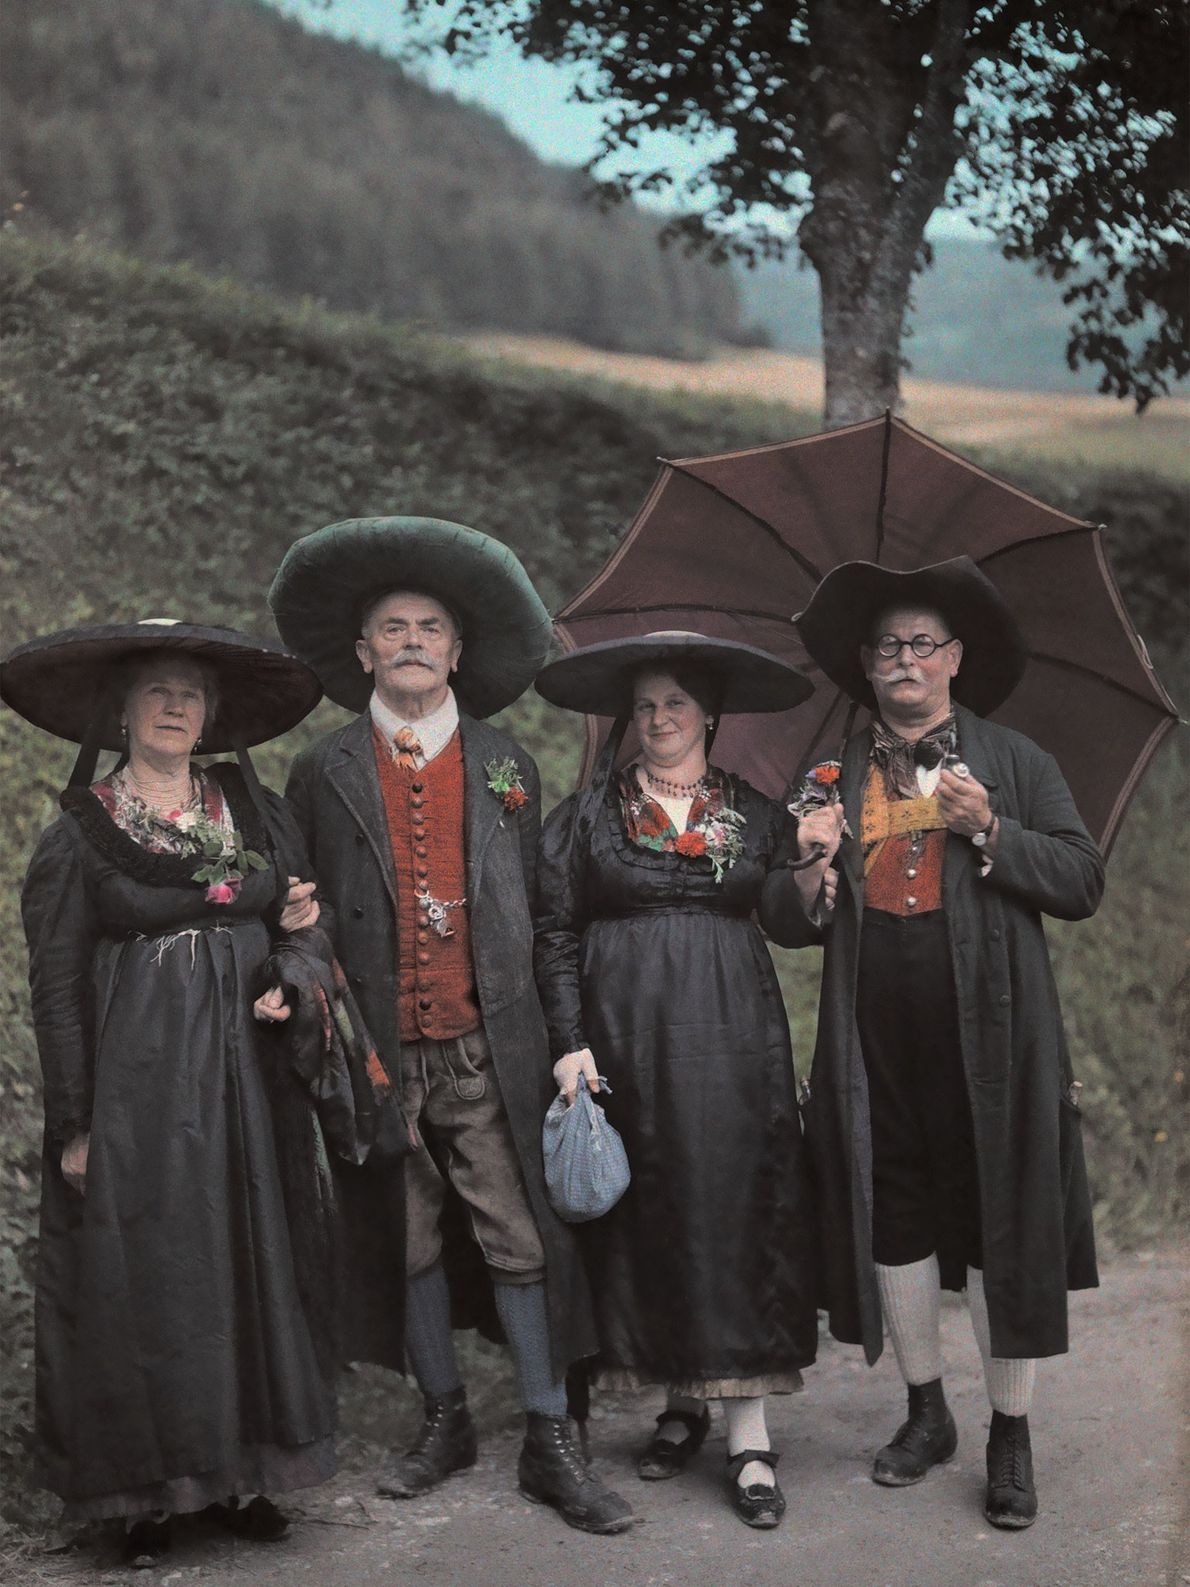 A group of Austrian people wear wide-brimmed hats as they travel down a rural Styrian road ...